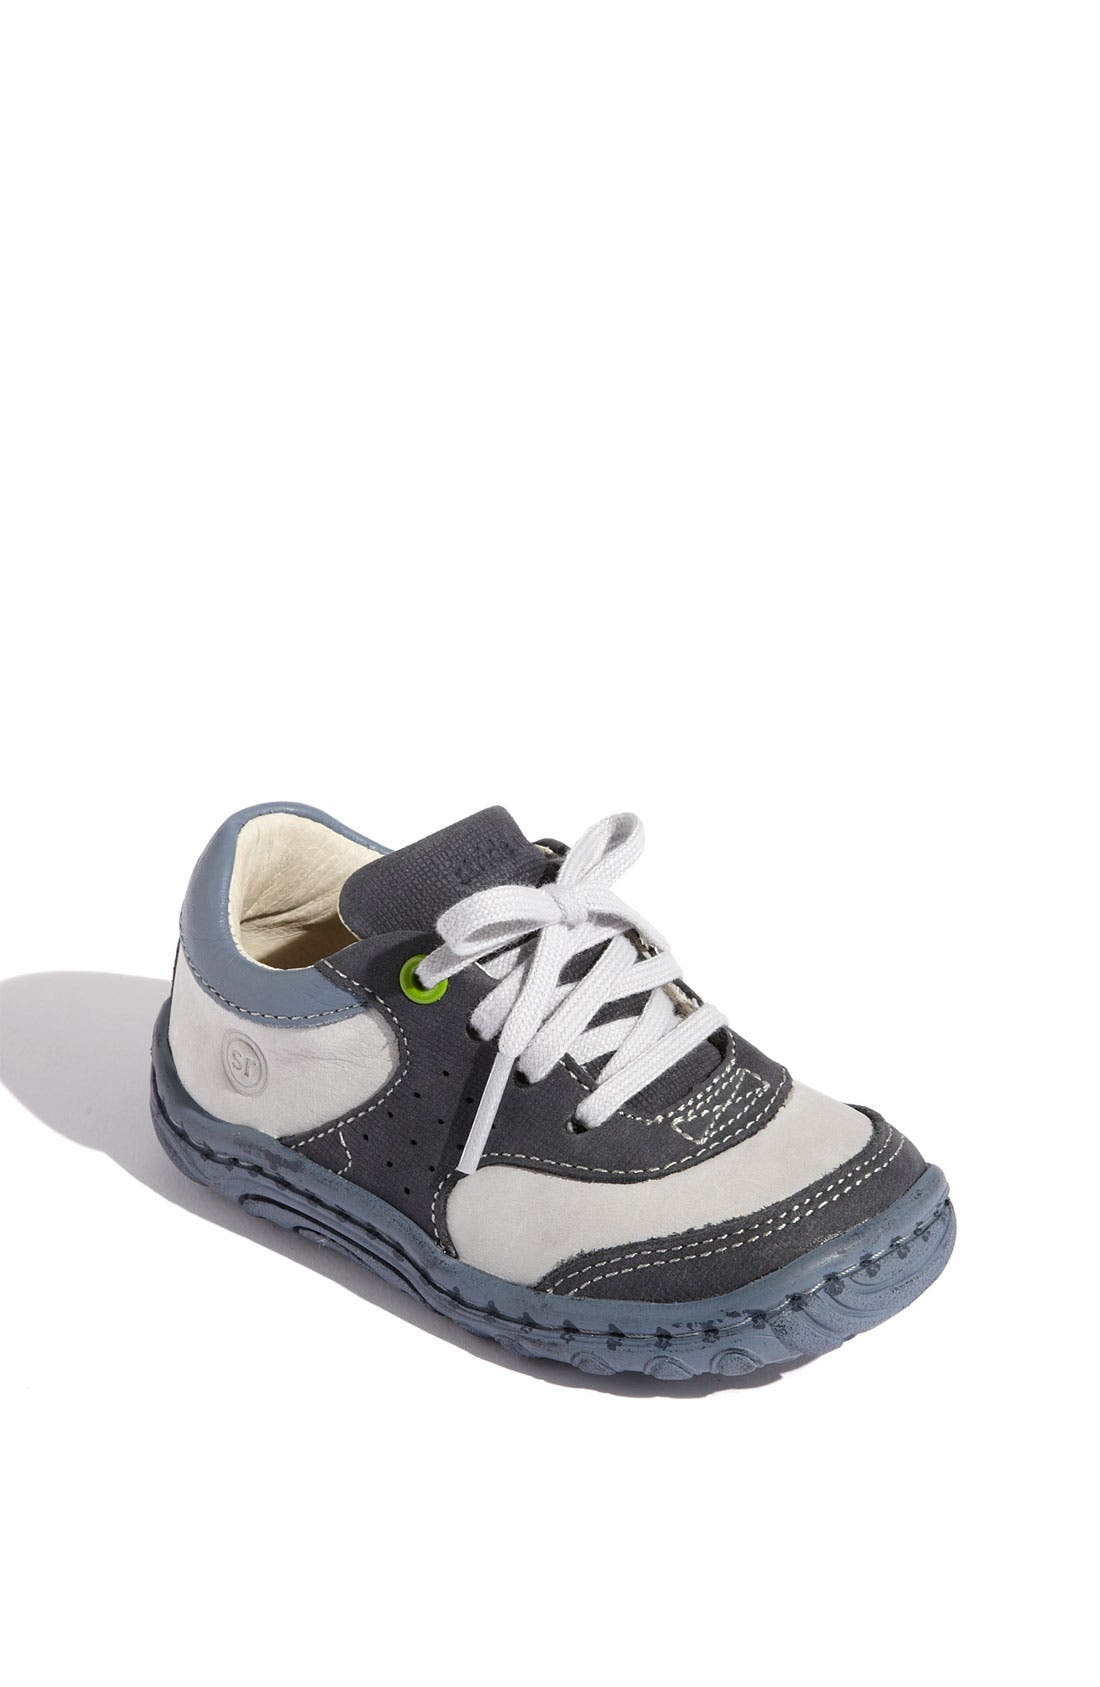 Alternate Image 1 Selected - Stride Rite 'Charles' Sneaker (Baby, Walker & Toddler)